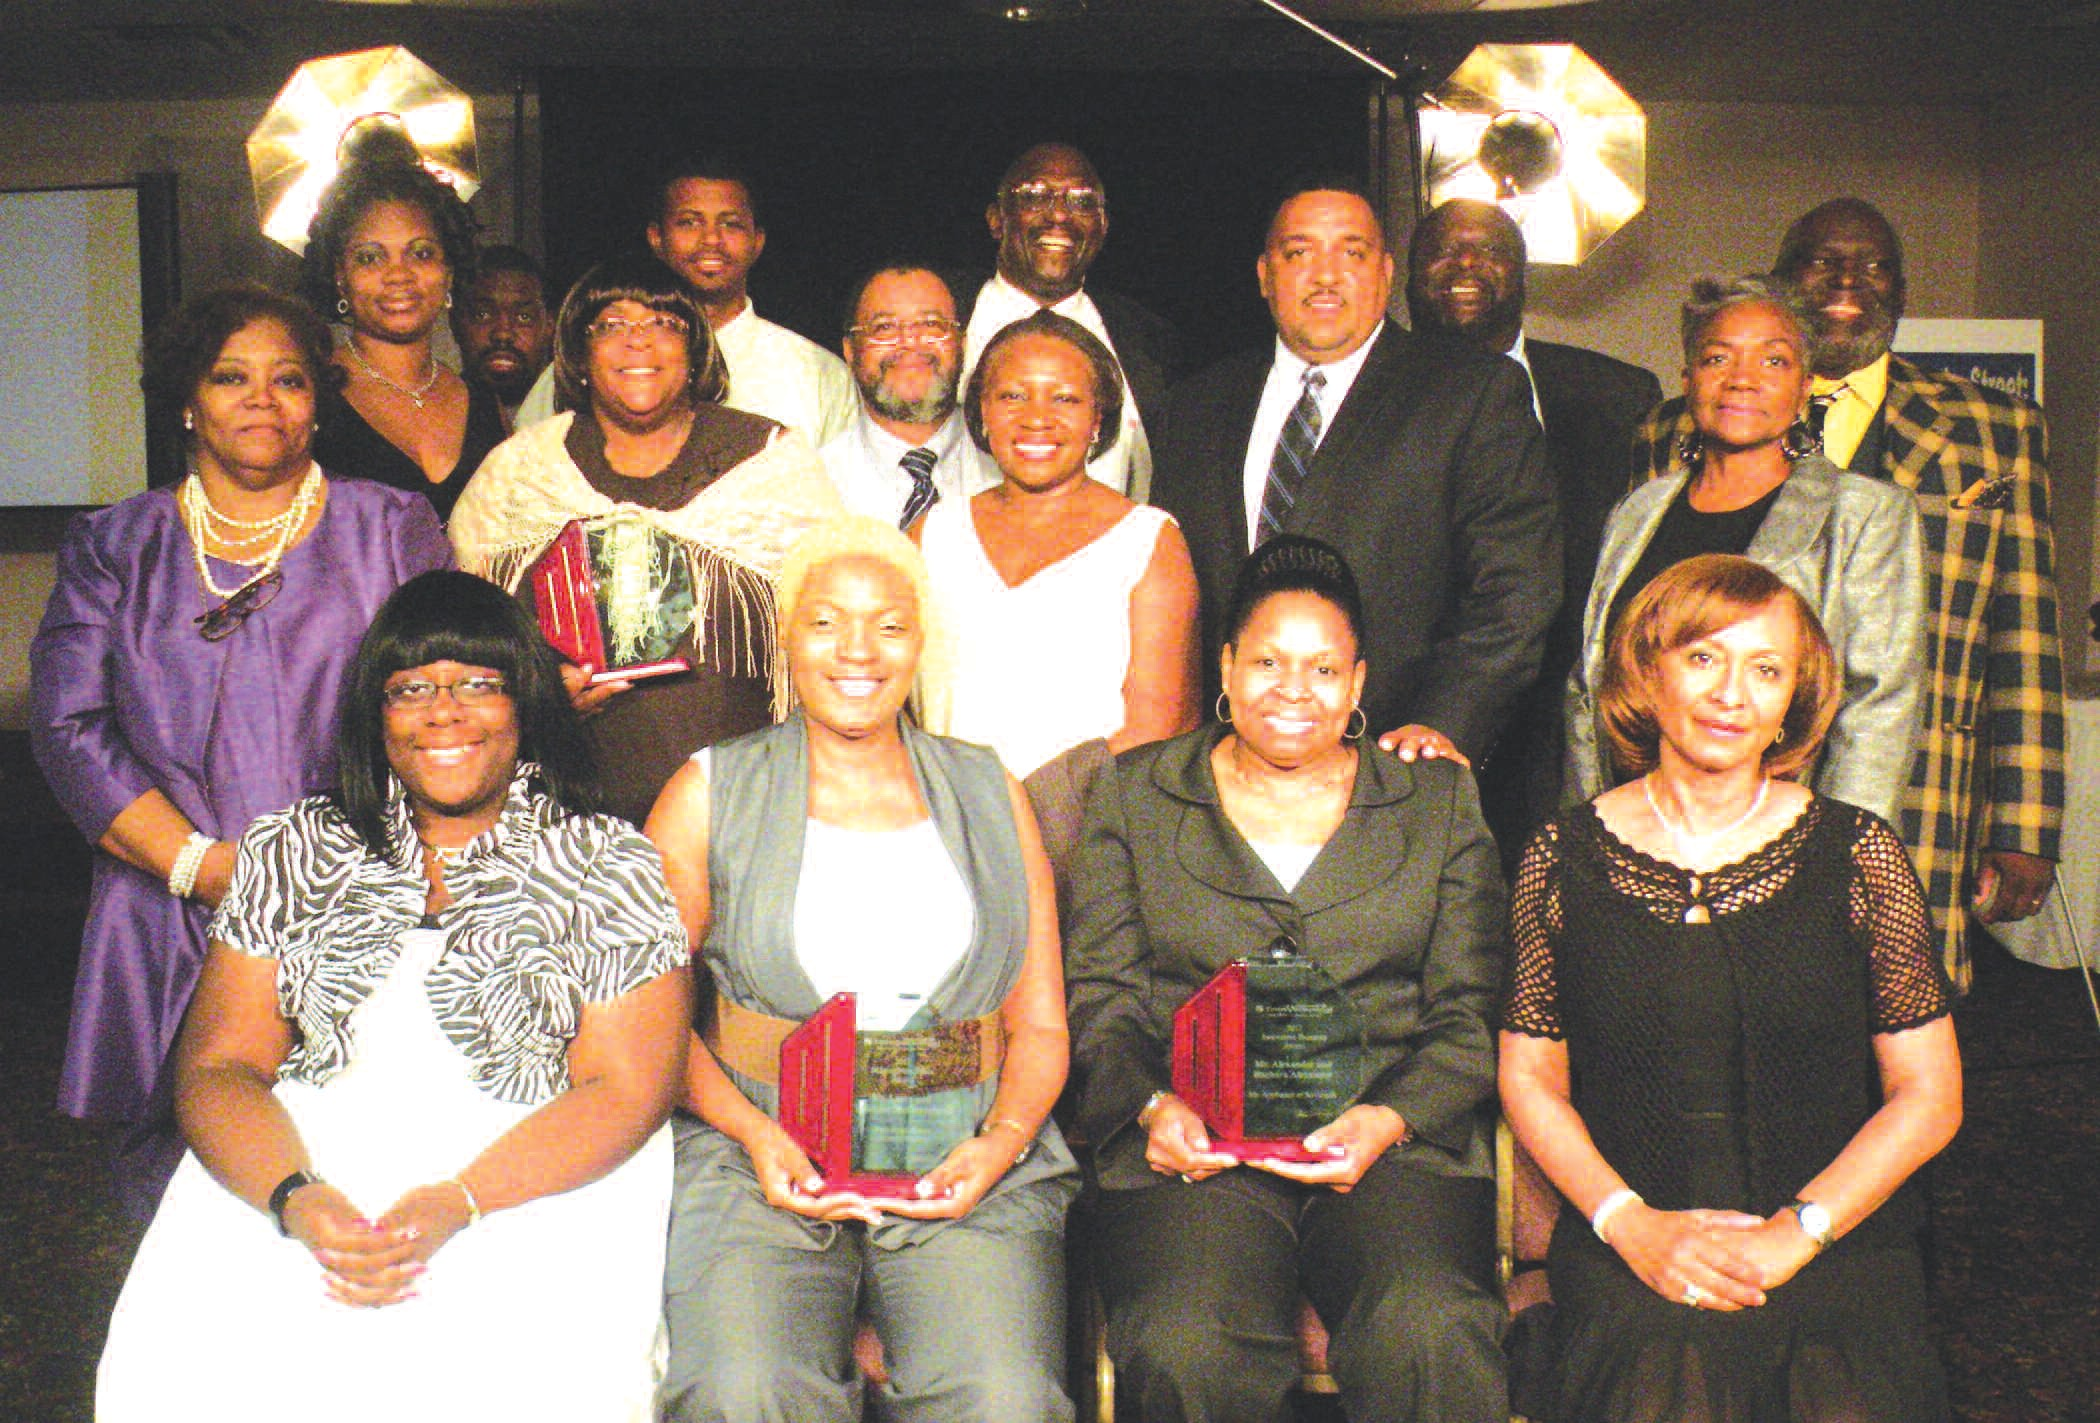 Mrs. Charlena Brown (front, standing) and Mr. Charlie Brown (center, standing) are pictured with Entrepreneurial Center graduates and award recipients